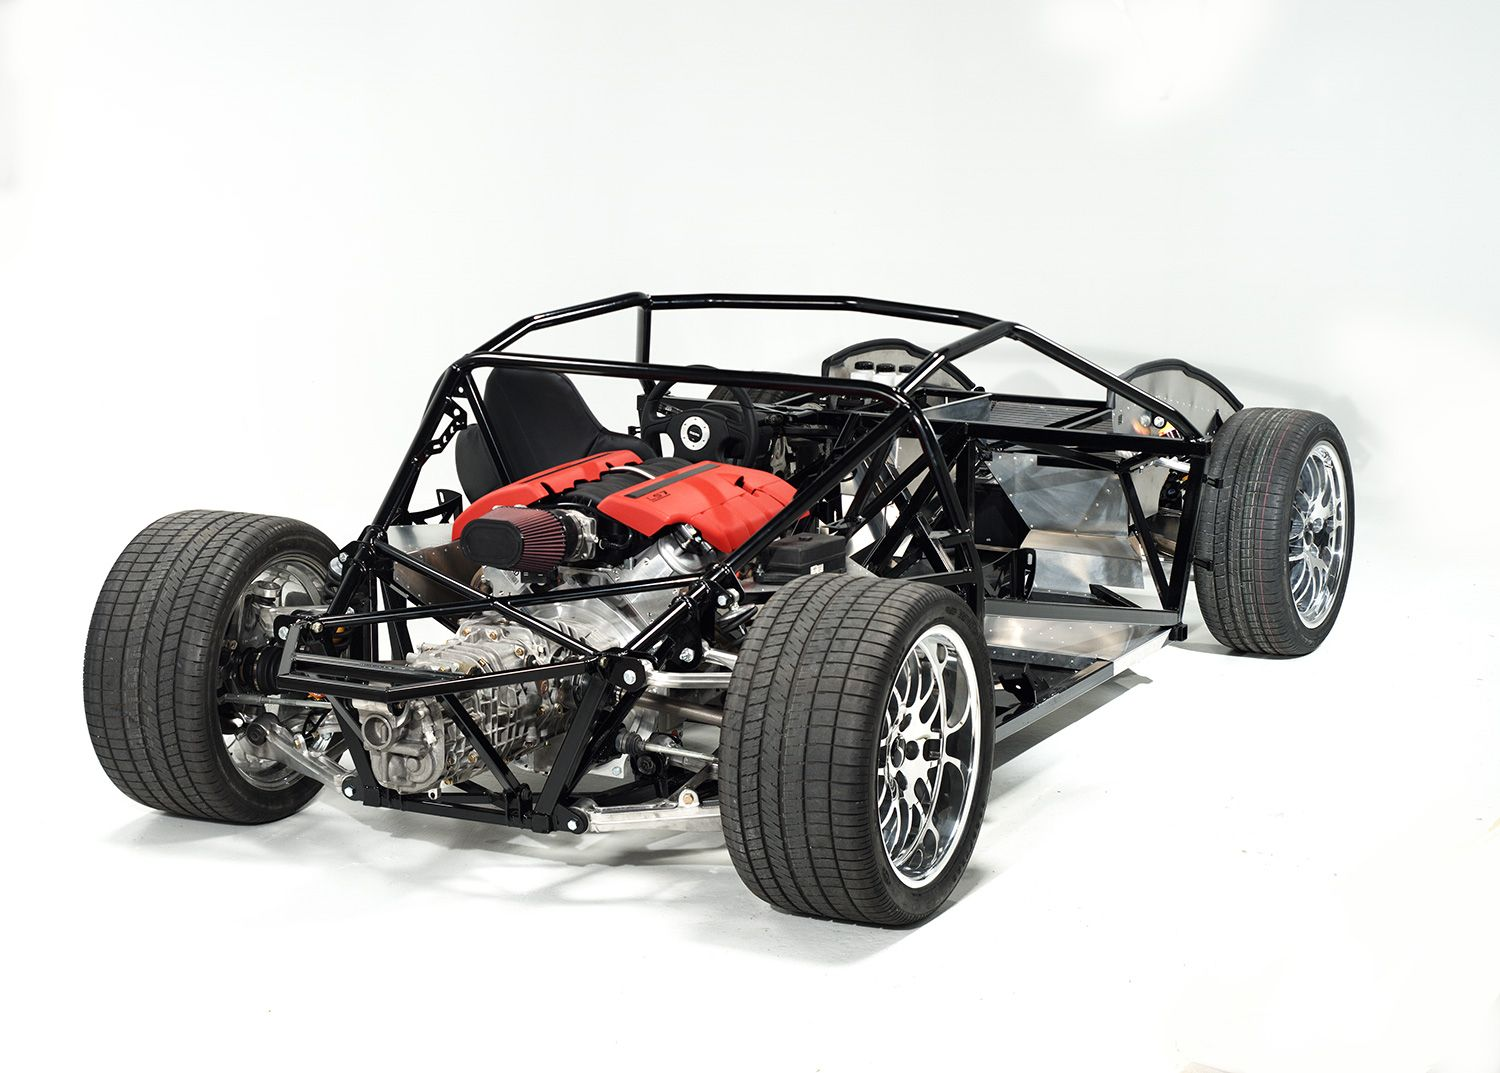 The next factory five kit car includes subaru page 5 grassroots - Explore Kit Cars Super Car And More Gtm Rolling Chassis Factory Five Racing